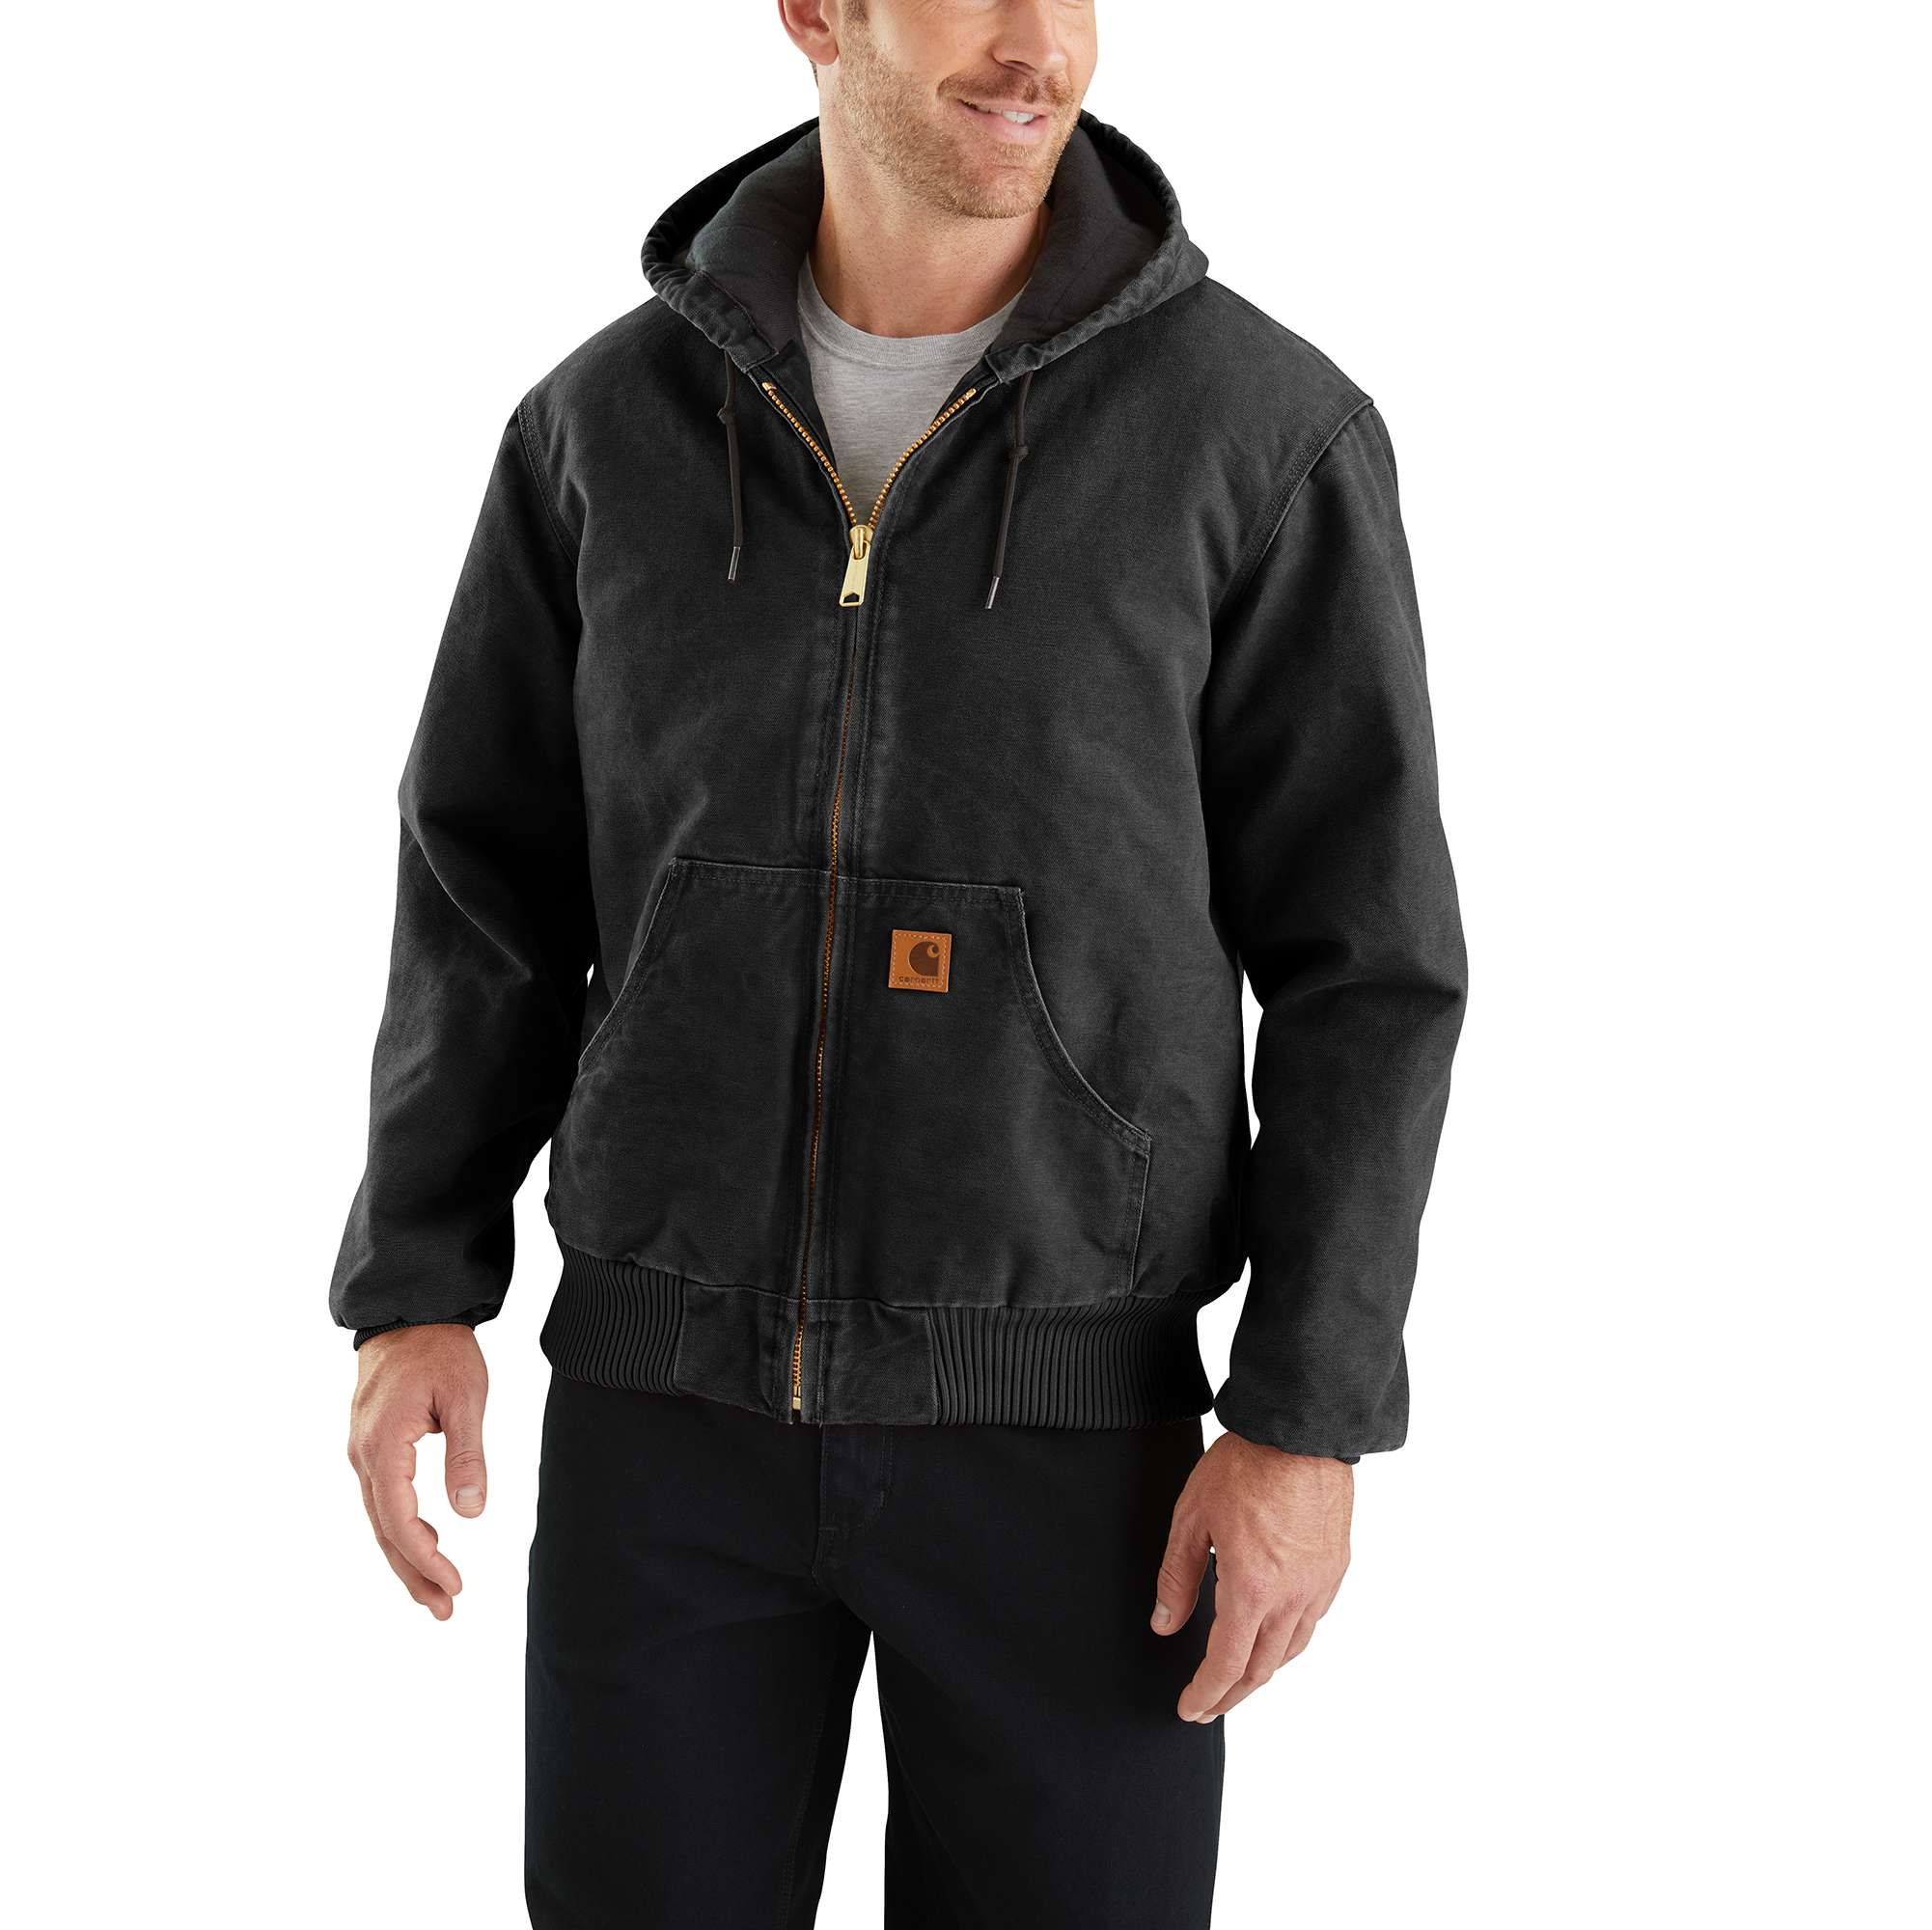 Carhartt Sandstone Quilted Flannel-lined Active Jac | Men | Carhartt